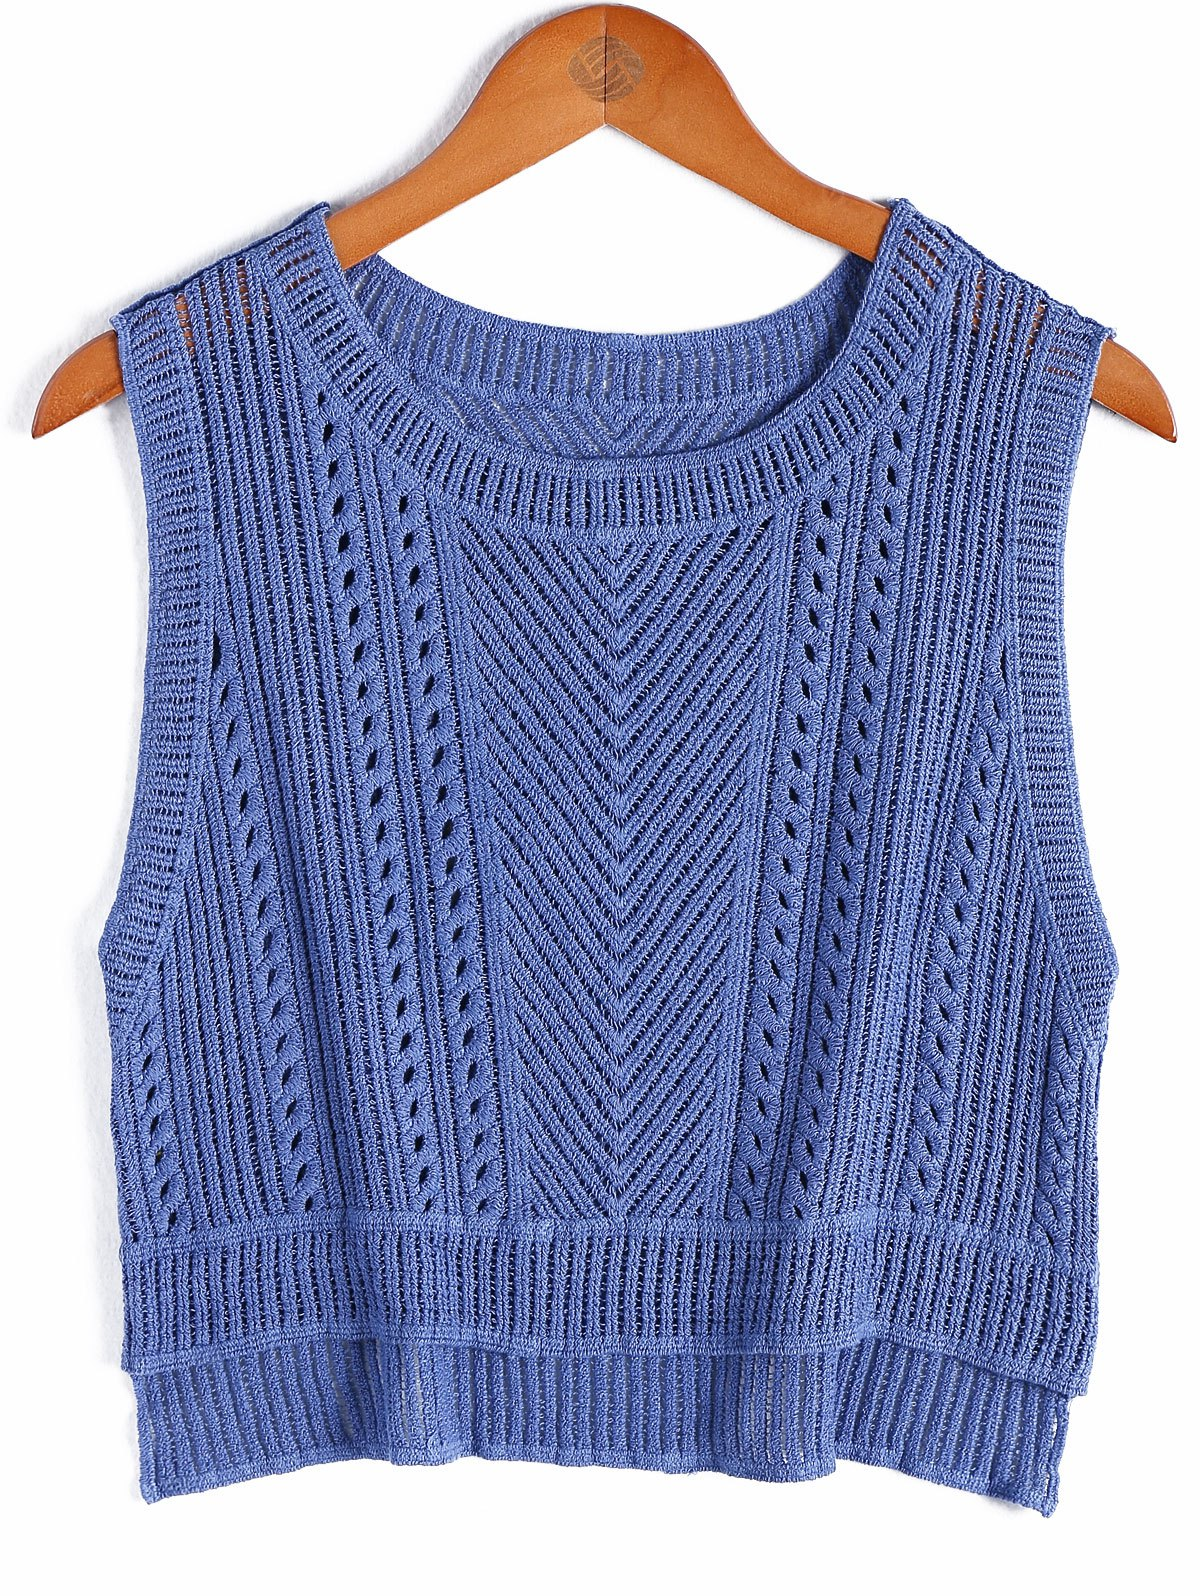 Stylish Women's Scoop Neck Solid Color Asymmetric Cotton Blend Sleeveless Top - ROYAL BLUE ONE SIZE(FIT SIZE XS TO M)